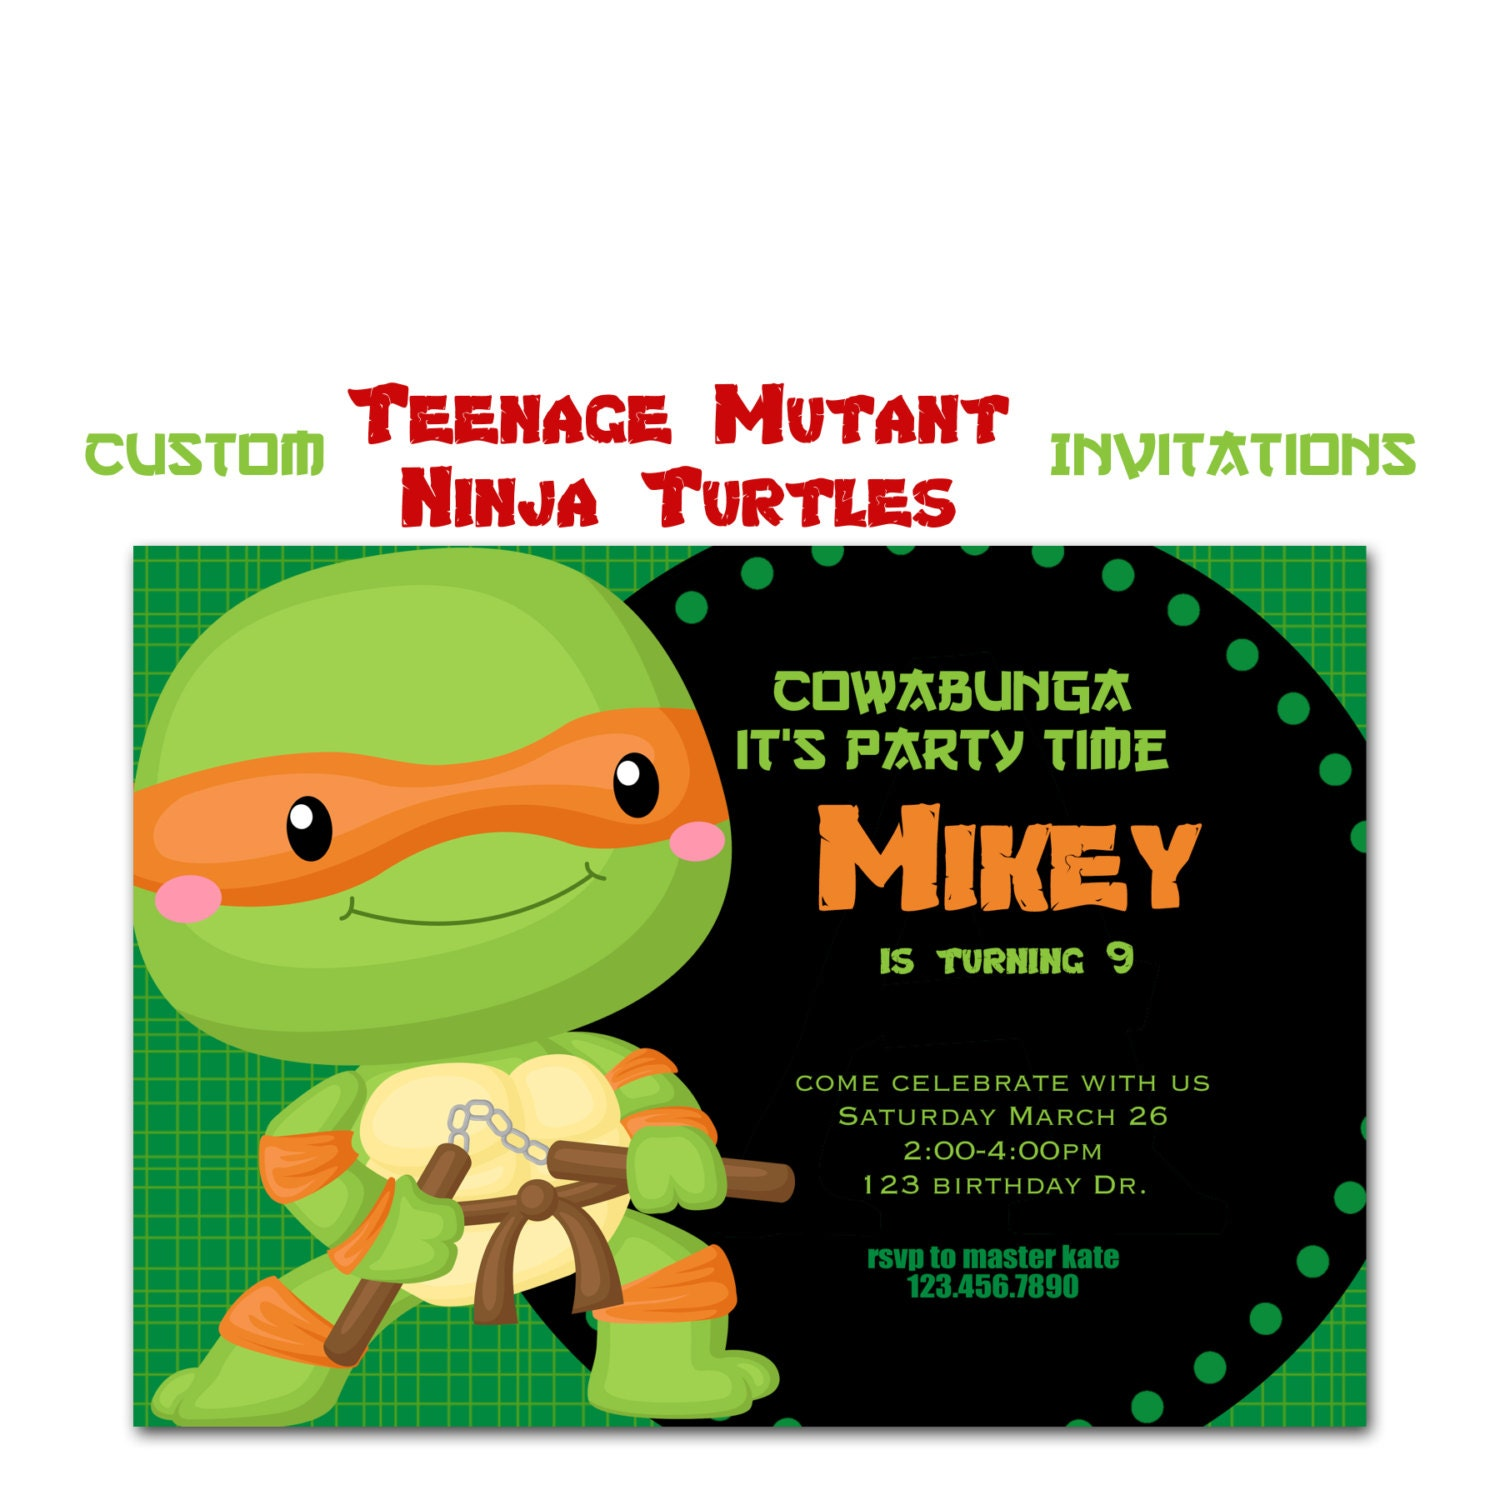 Teenage Mutant Ninja Turtle Invitiation Custom Turtle